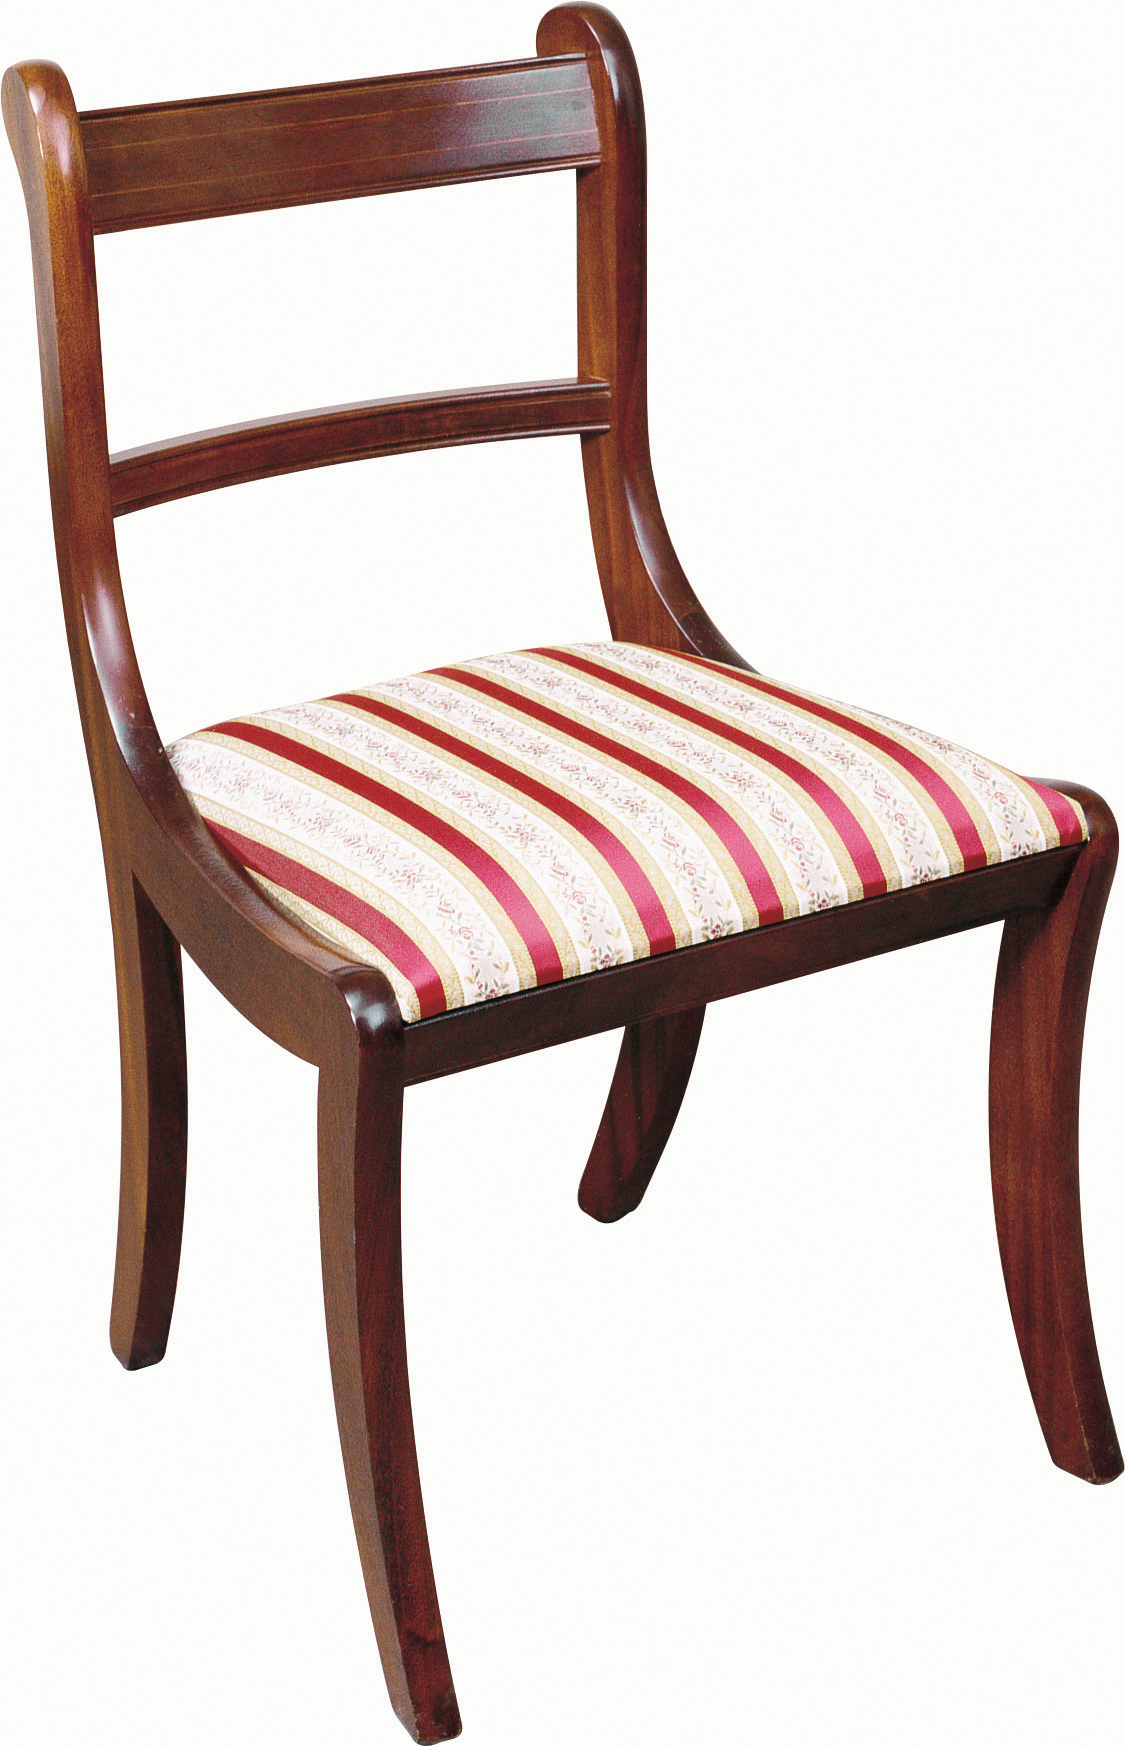 Sabre Leg Chair Chairs